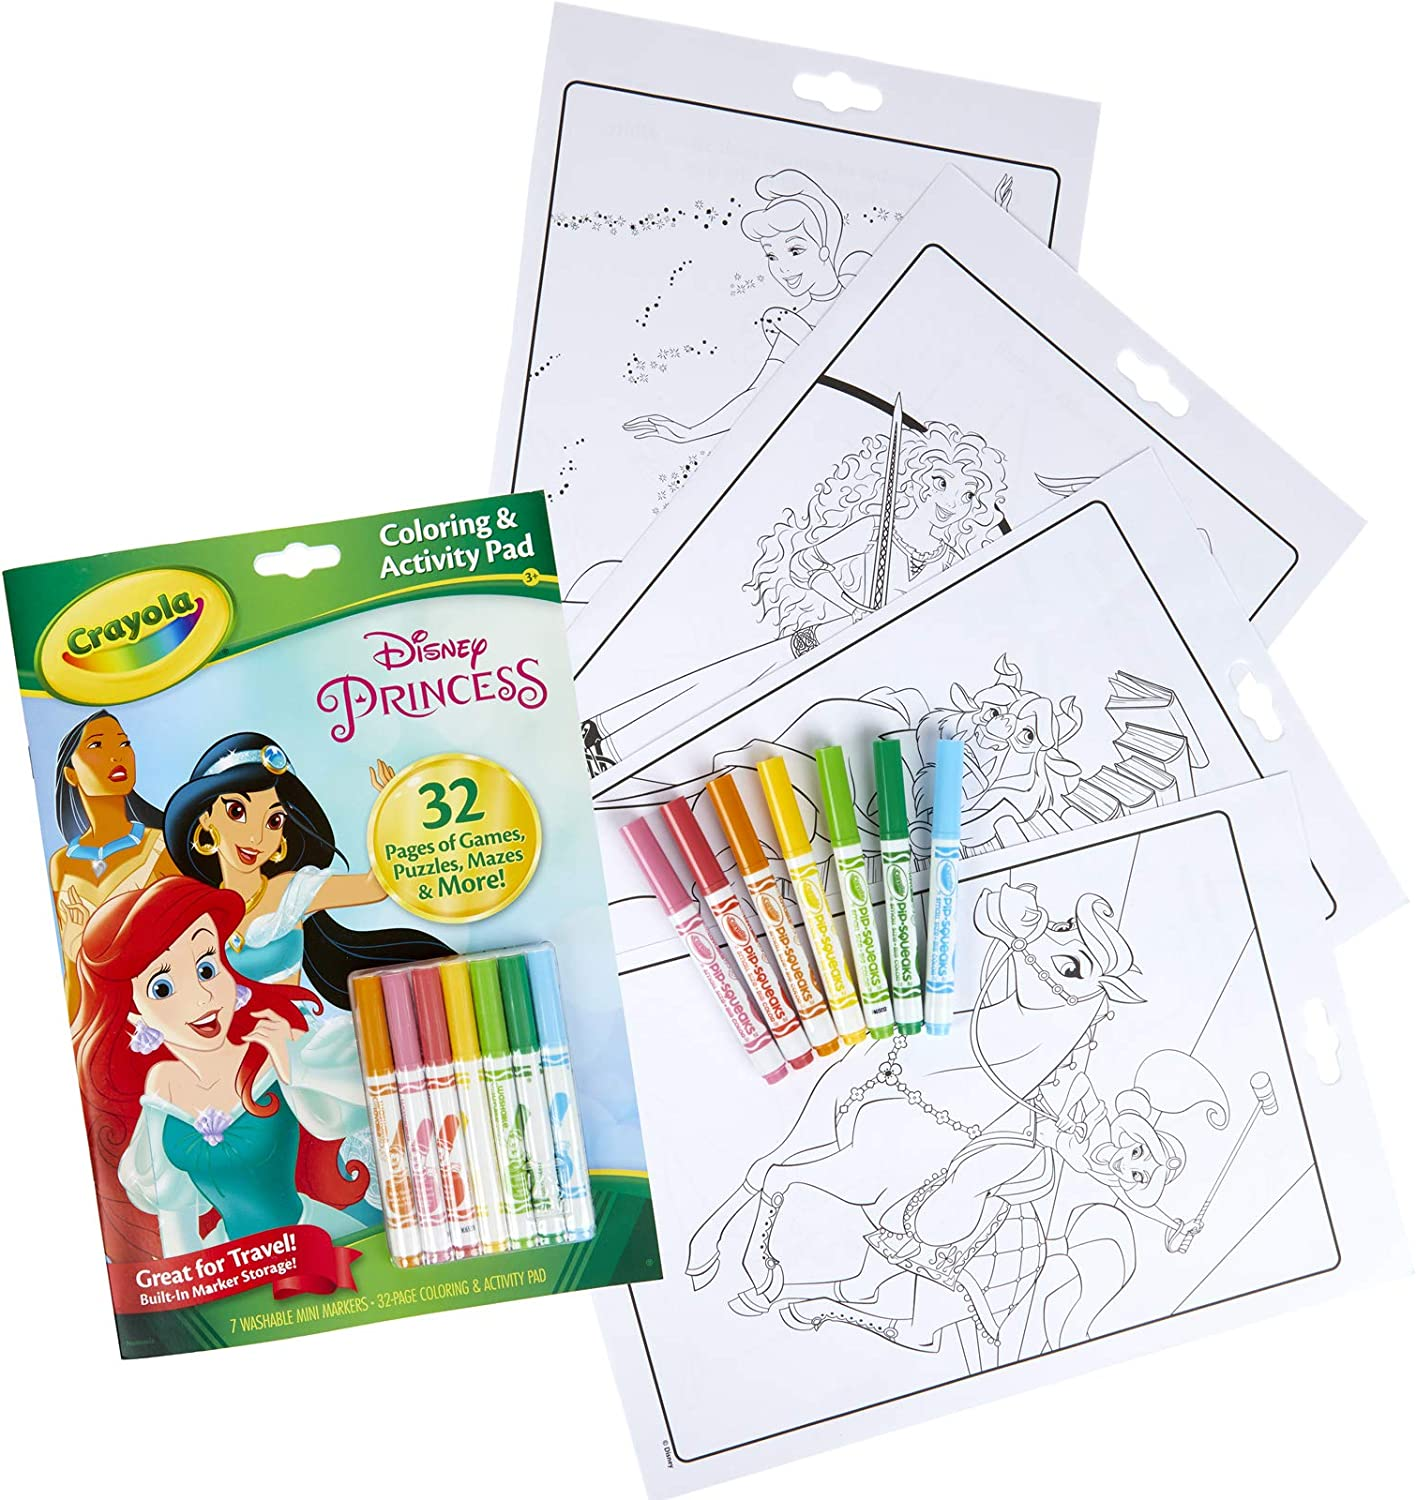 Amazon Com Crayola Disney Princess Color Activity Book 32 Coloring Pages 7 Mini Markers Gift For Kids Packaging May Vary Toys Games